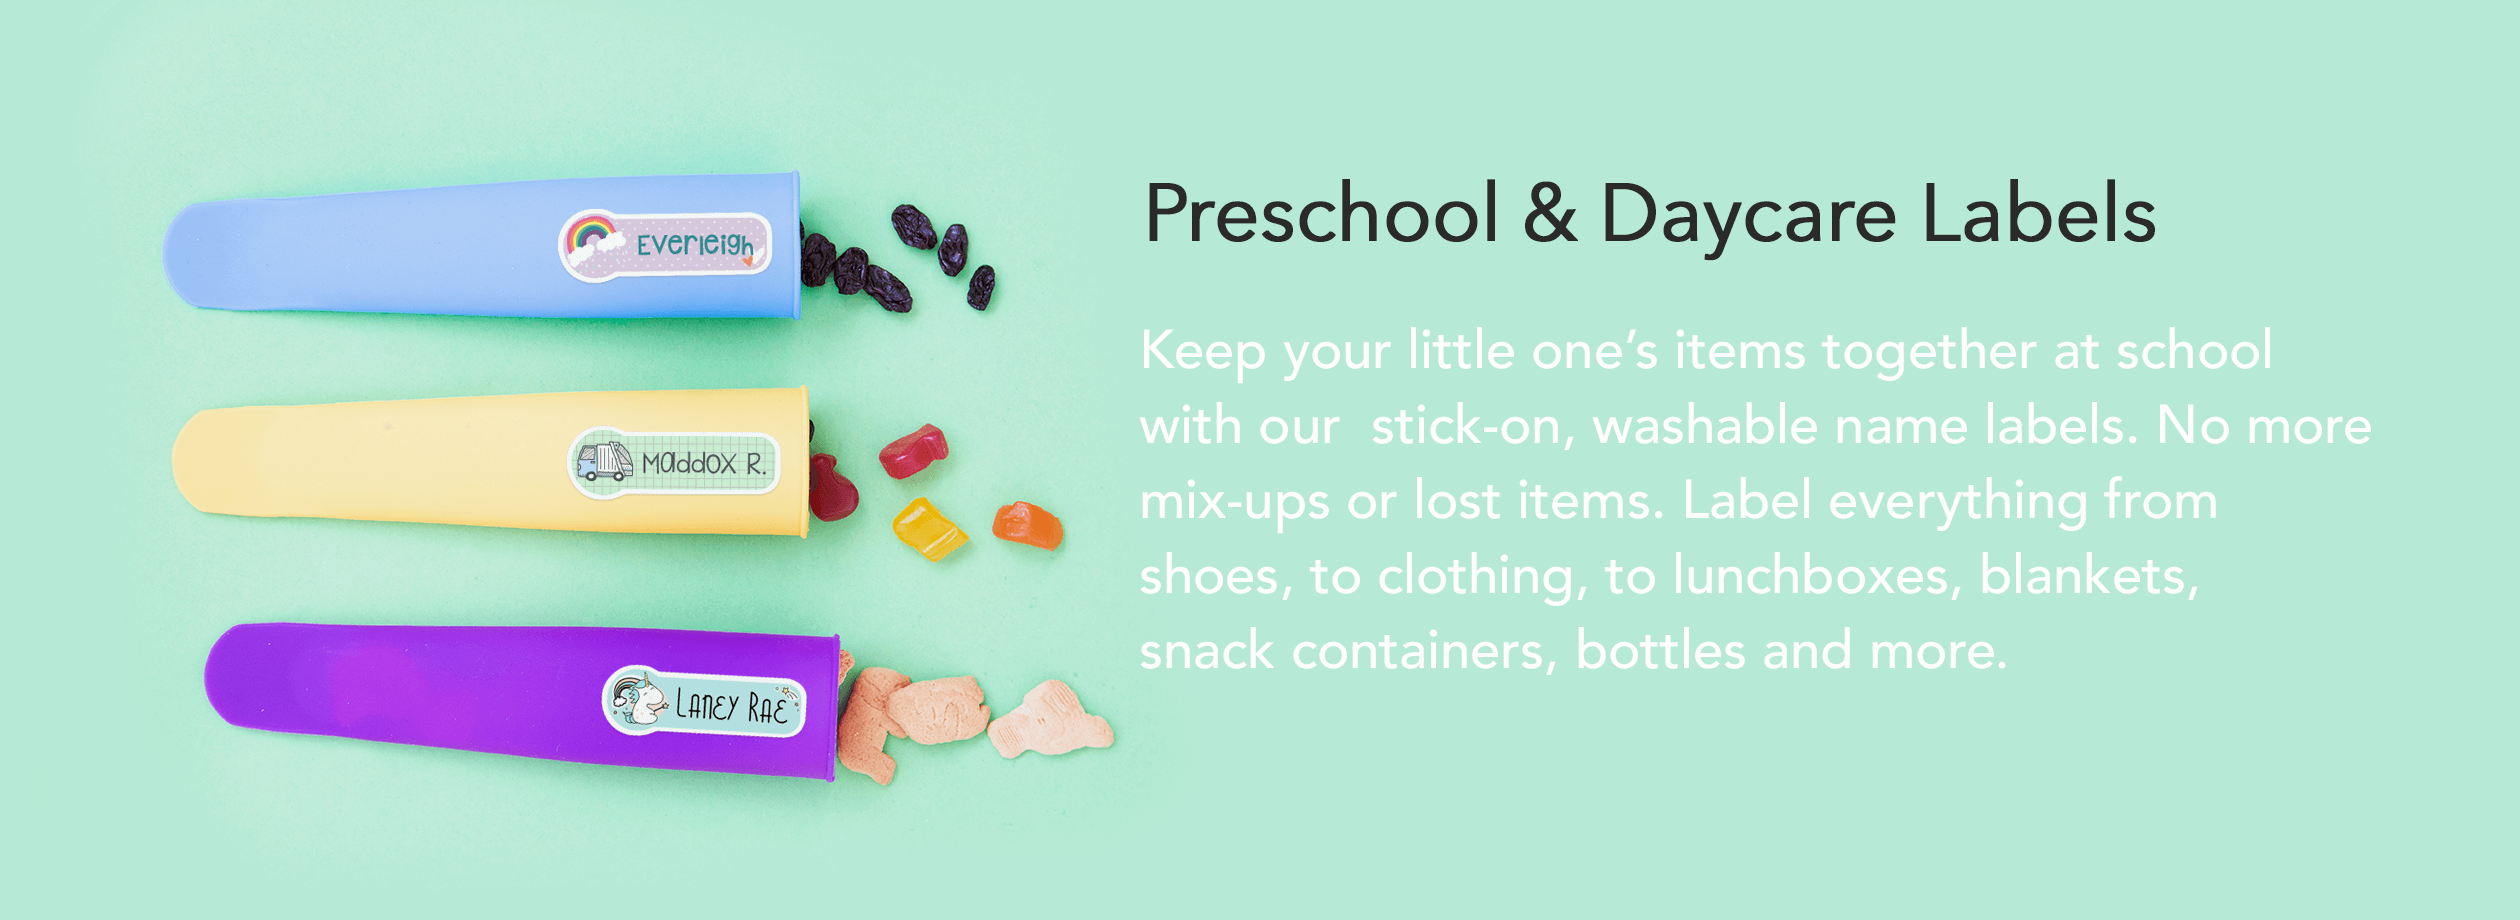 Preschool & Daycare Labels & Stickers